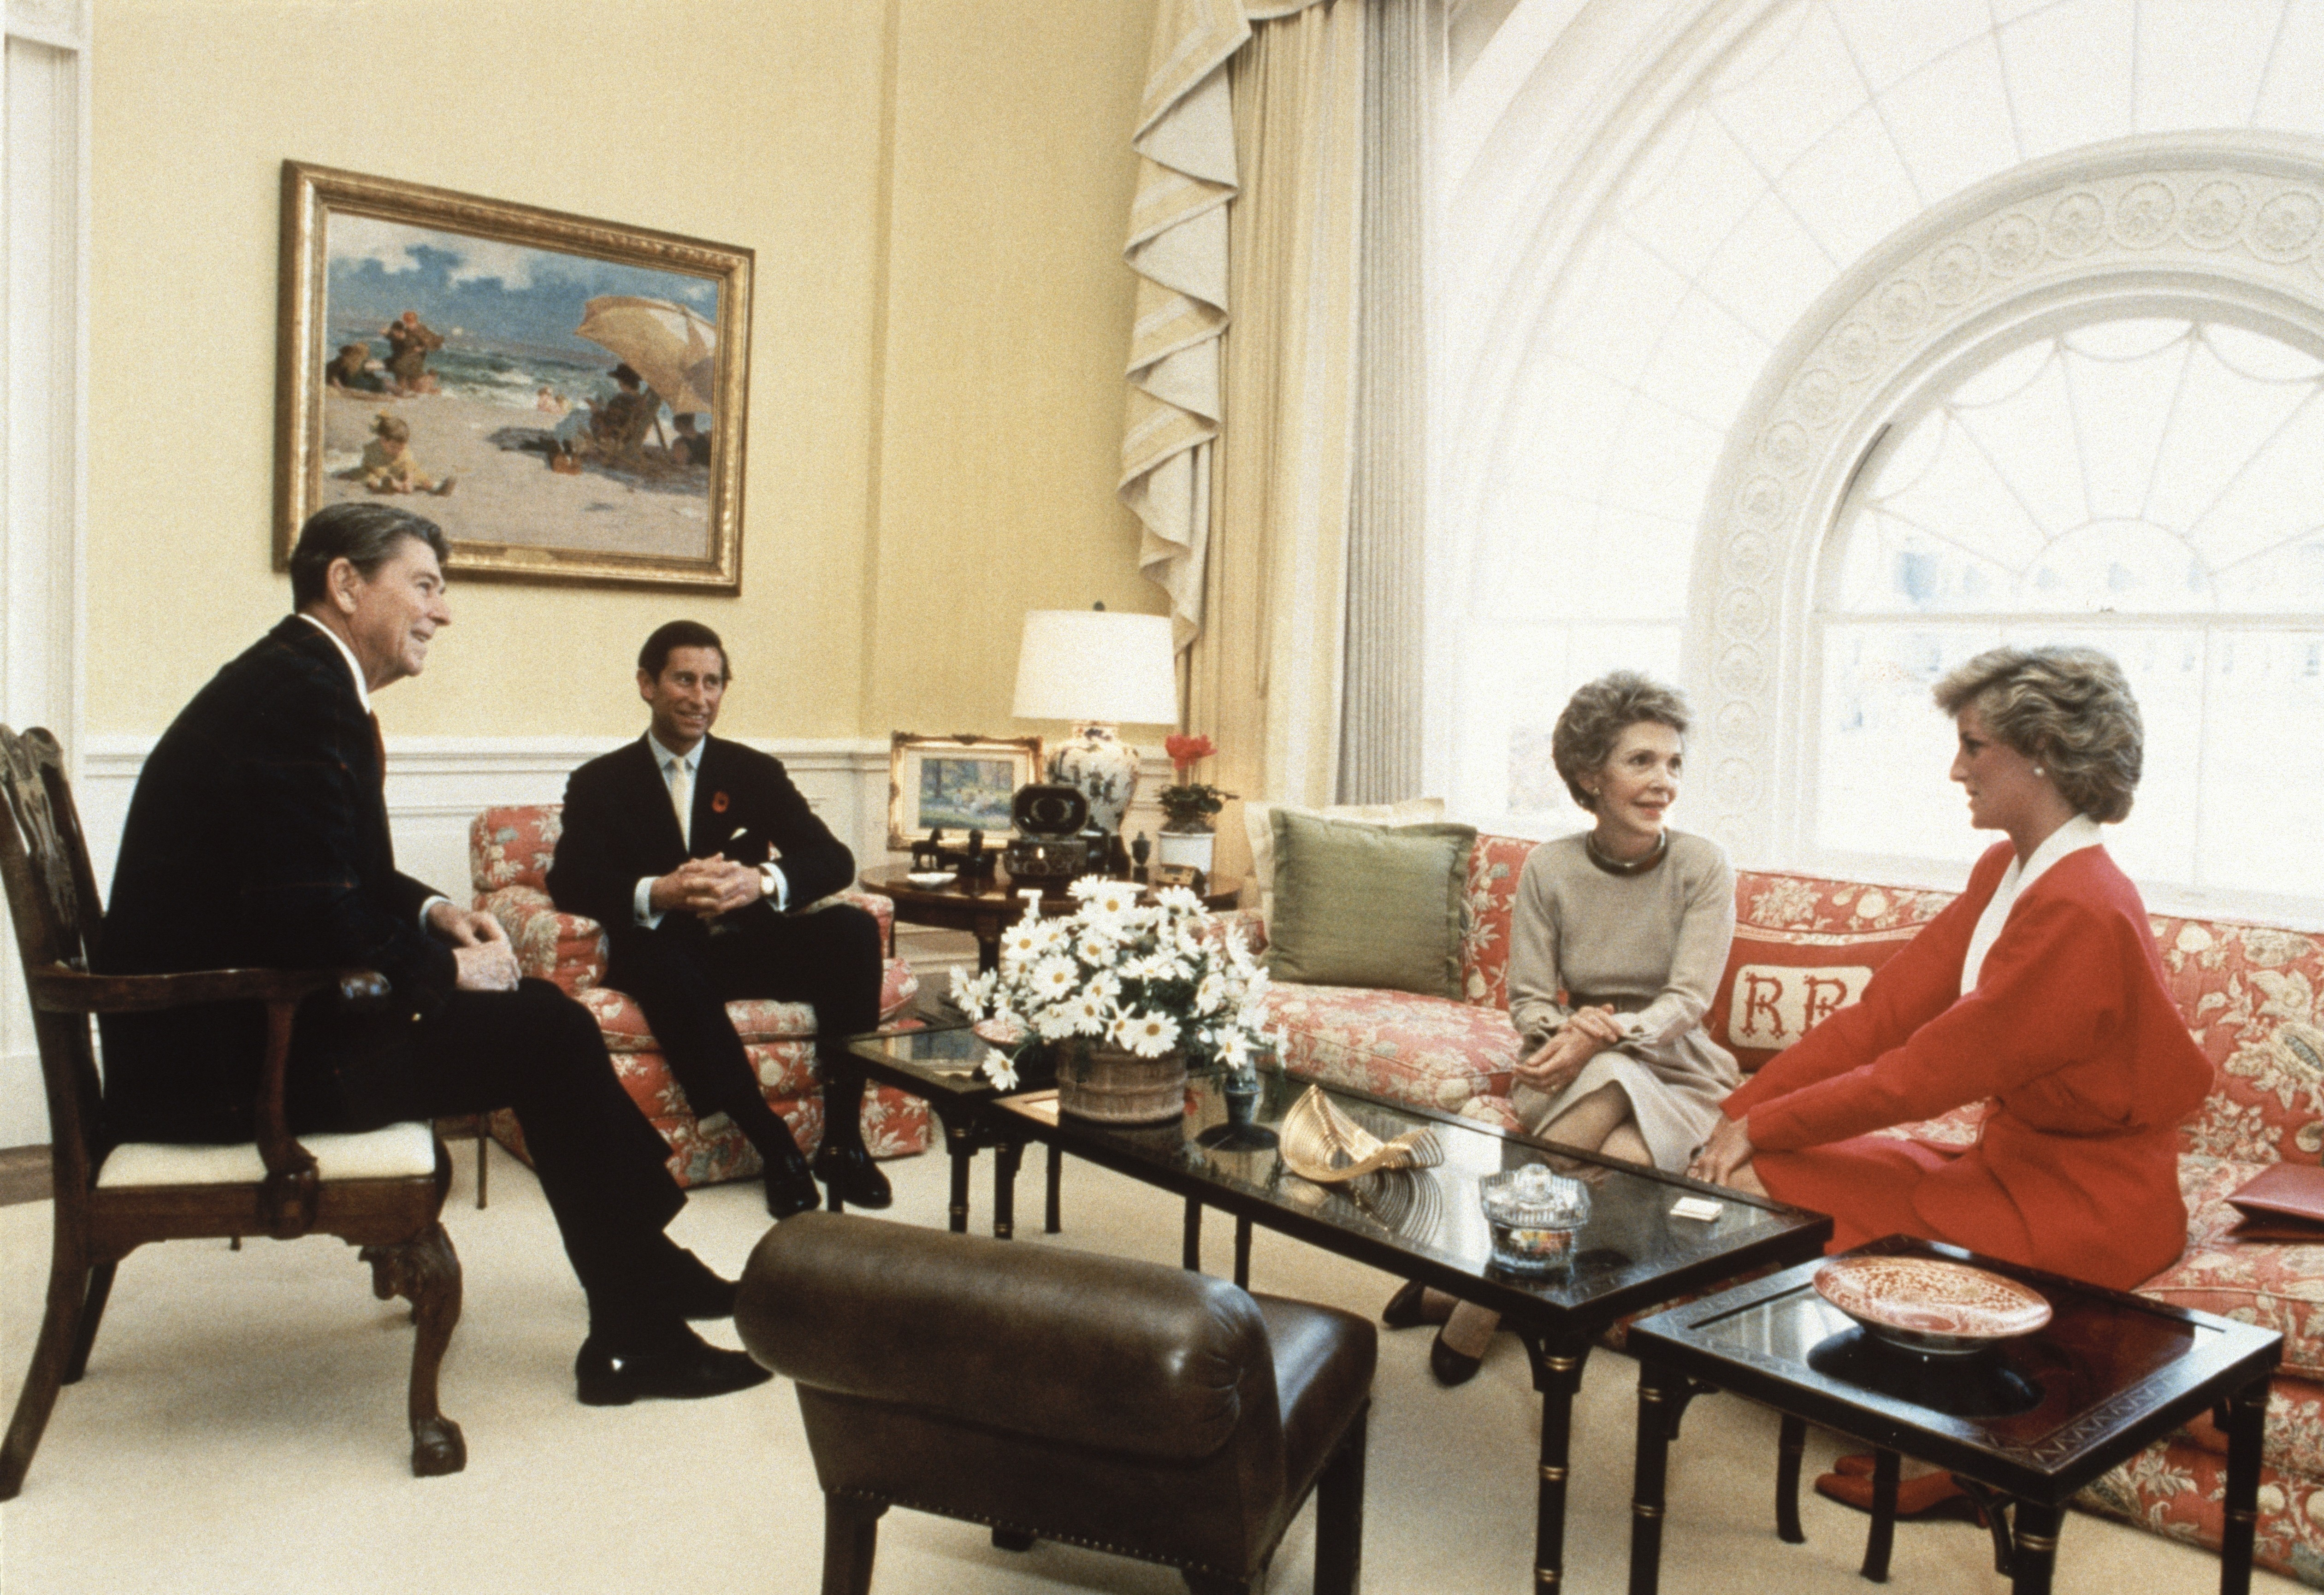 Entertainer In Chief                                                              Upon arriving in Washington, Nancy incurred controversy by setting about refurbishing the living quarters of the White House. Though the cost of the work was paid out of private donations, Nancy endured criticism from observers who felt that renovations were not an appropriate pursuit for an administration that was calling for reductions in federally funded social programs. Nancy insisted that the White House had fallen into disrepair, and, as a historically important building belonging to all Americans, it deserved first class treatment. She and Reagan met with Prince Charles and Lady Diana in the living quarters in 1985.